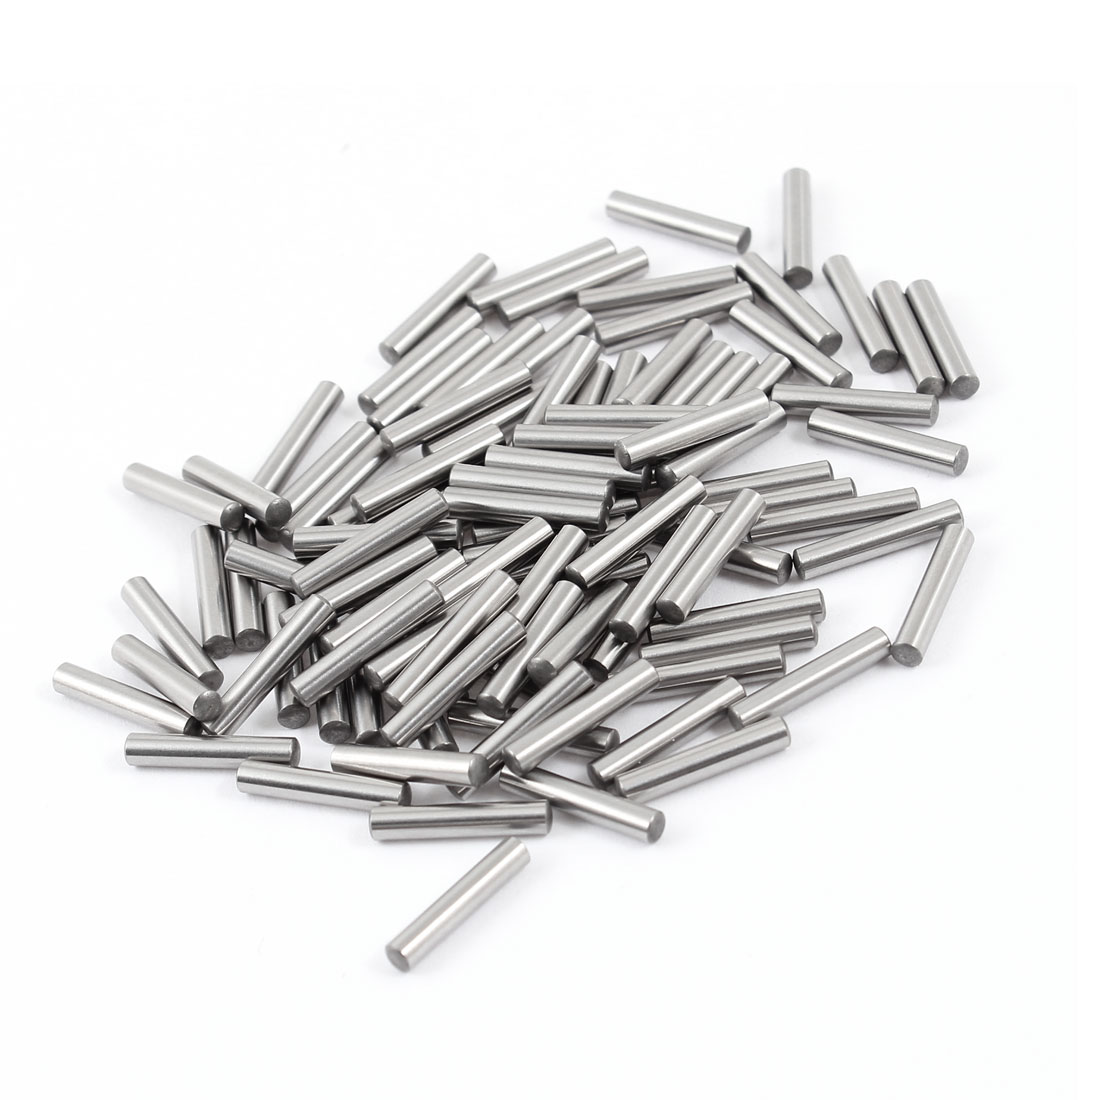 100 Pcs Stainless Steel 2.95mm x 15.8mm Parallel Dowel Pins Fasten Elements Silver Tone